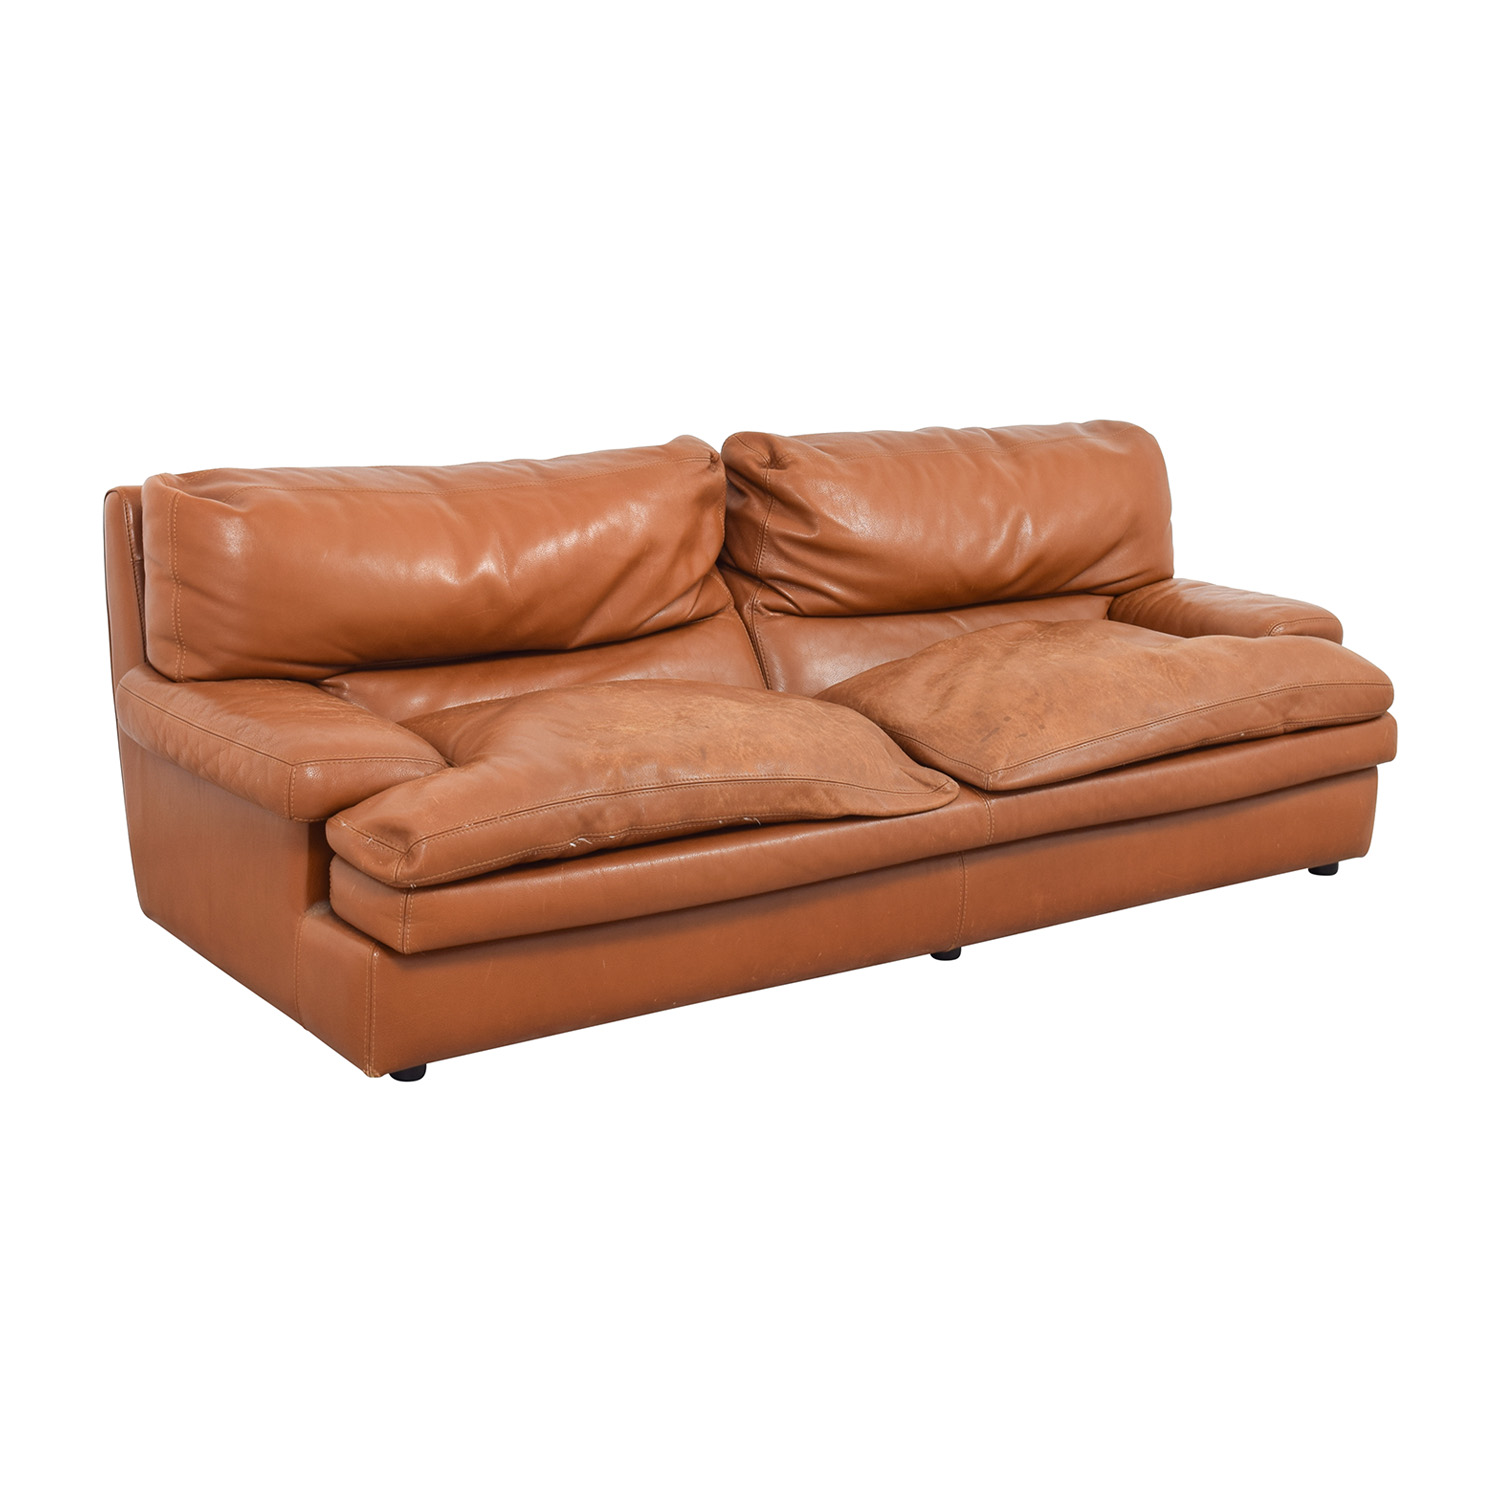 81 off roche bobois roche bobois burnt orange leather sofa sofas. Black Bedroom Furniture Sets. Home Design Ideas